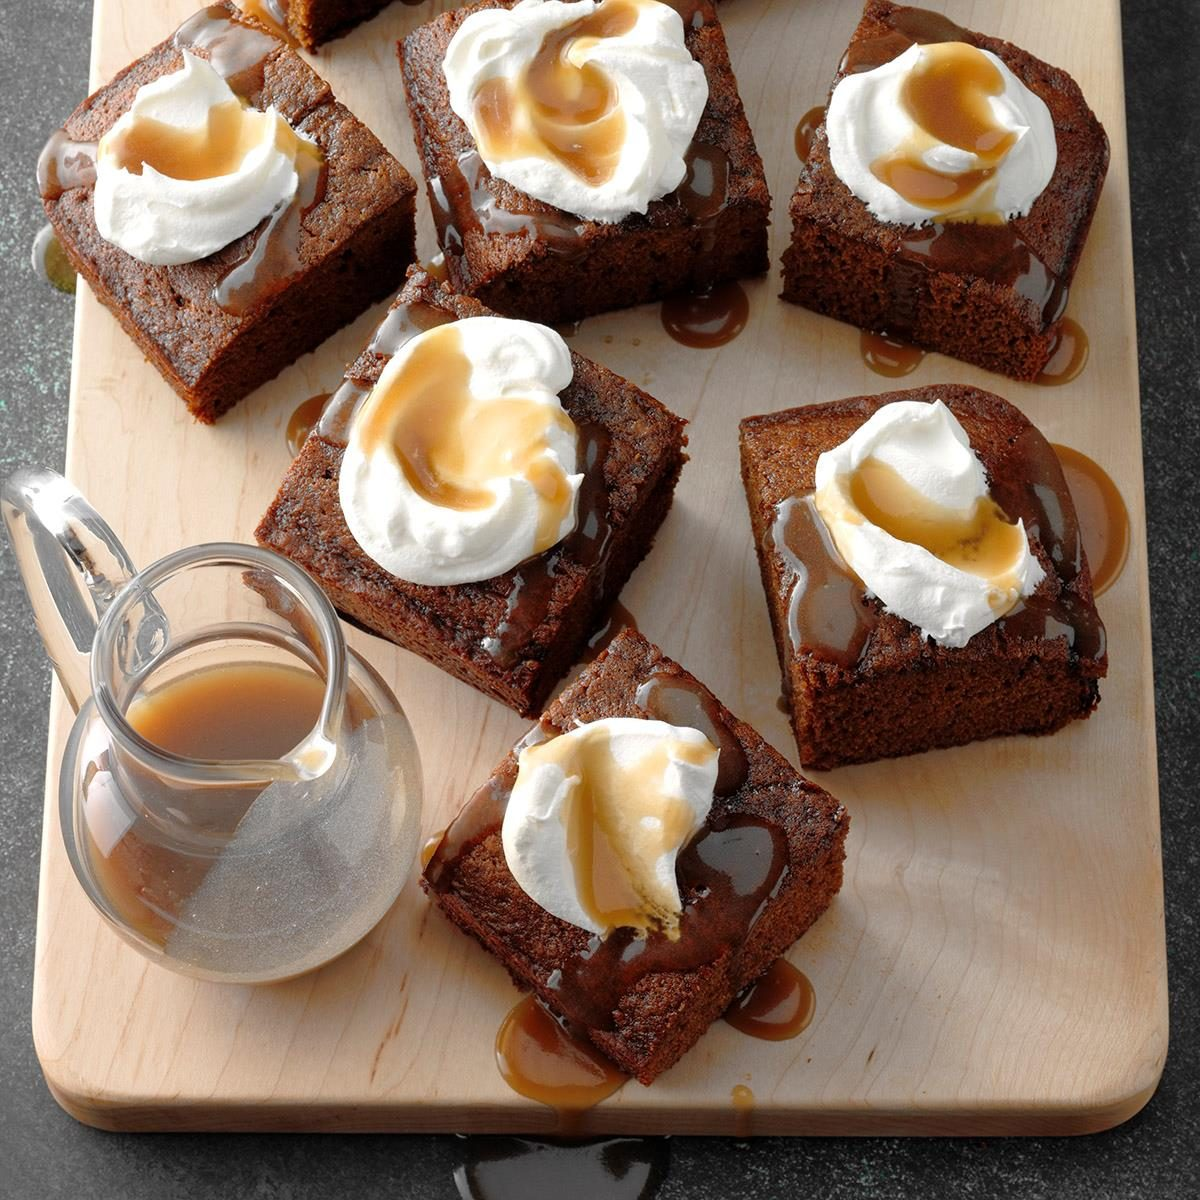 Granny's Gingerbread Cake with Caramel Sauce